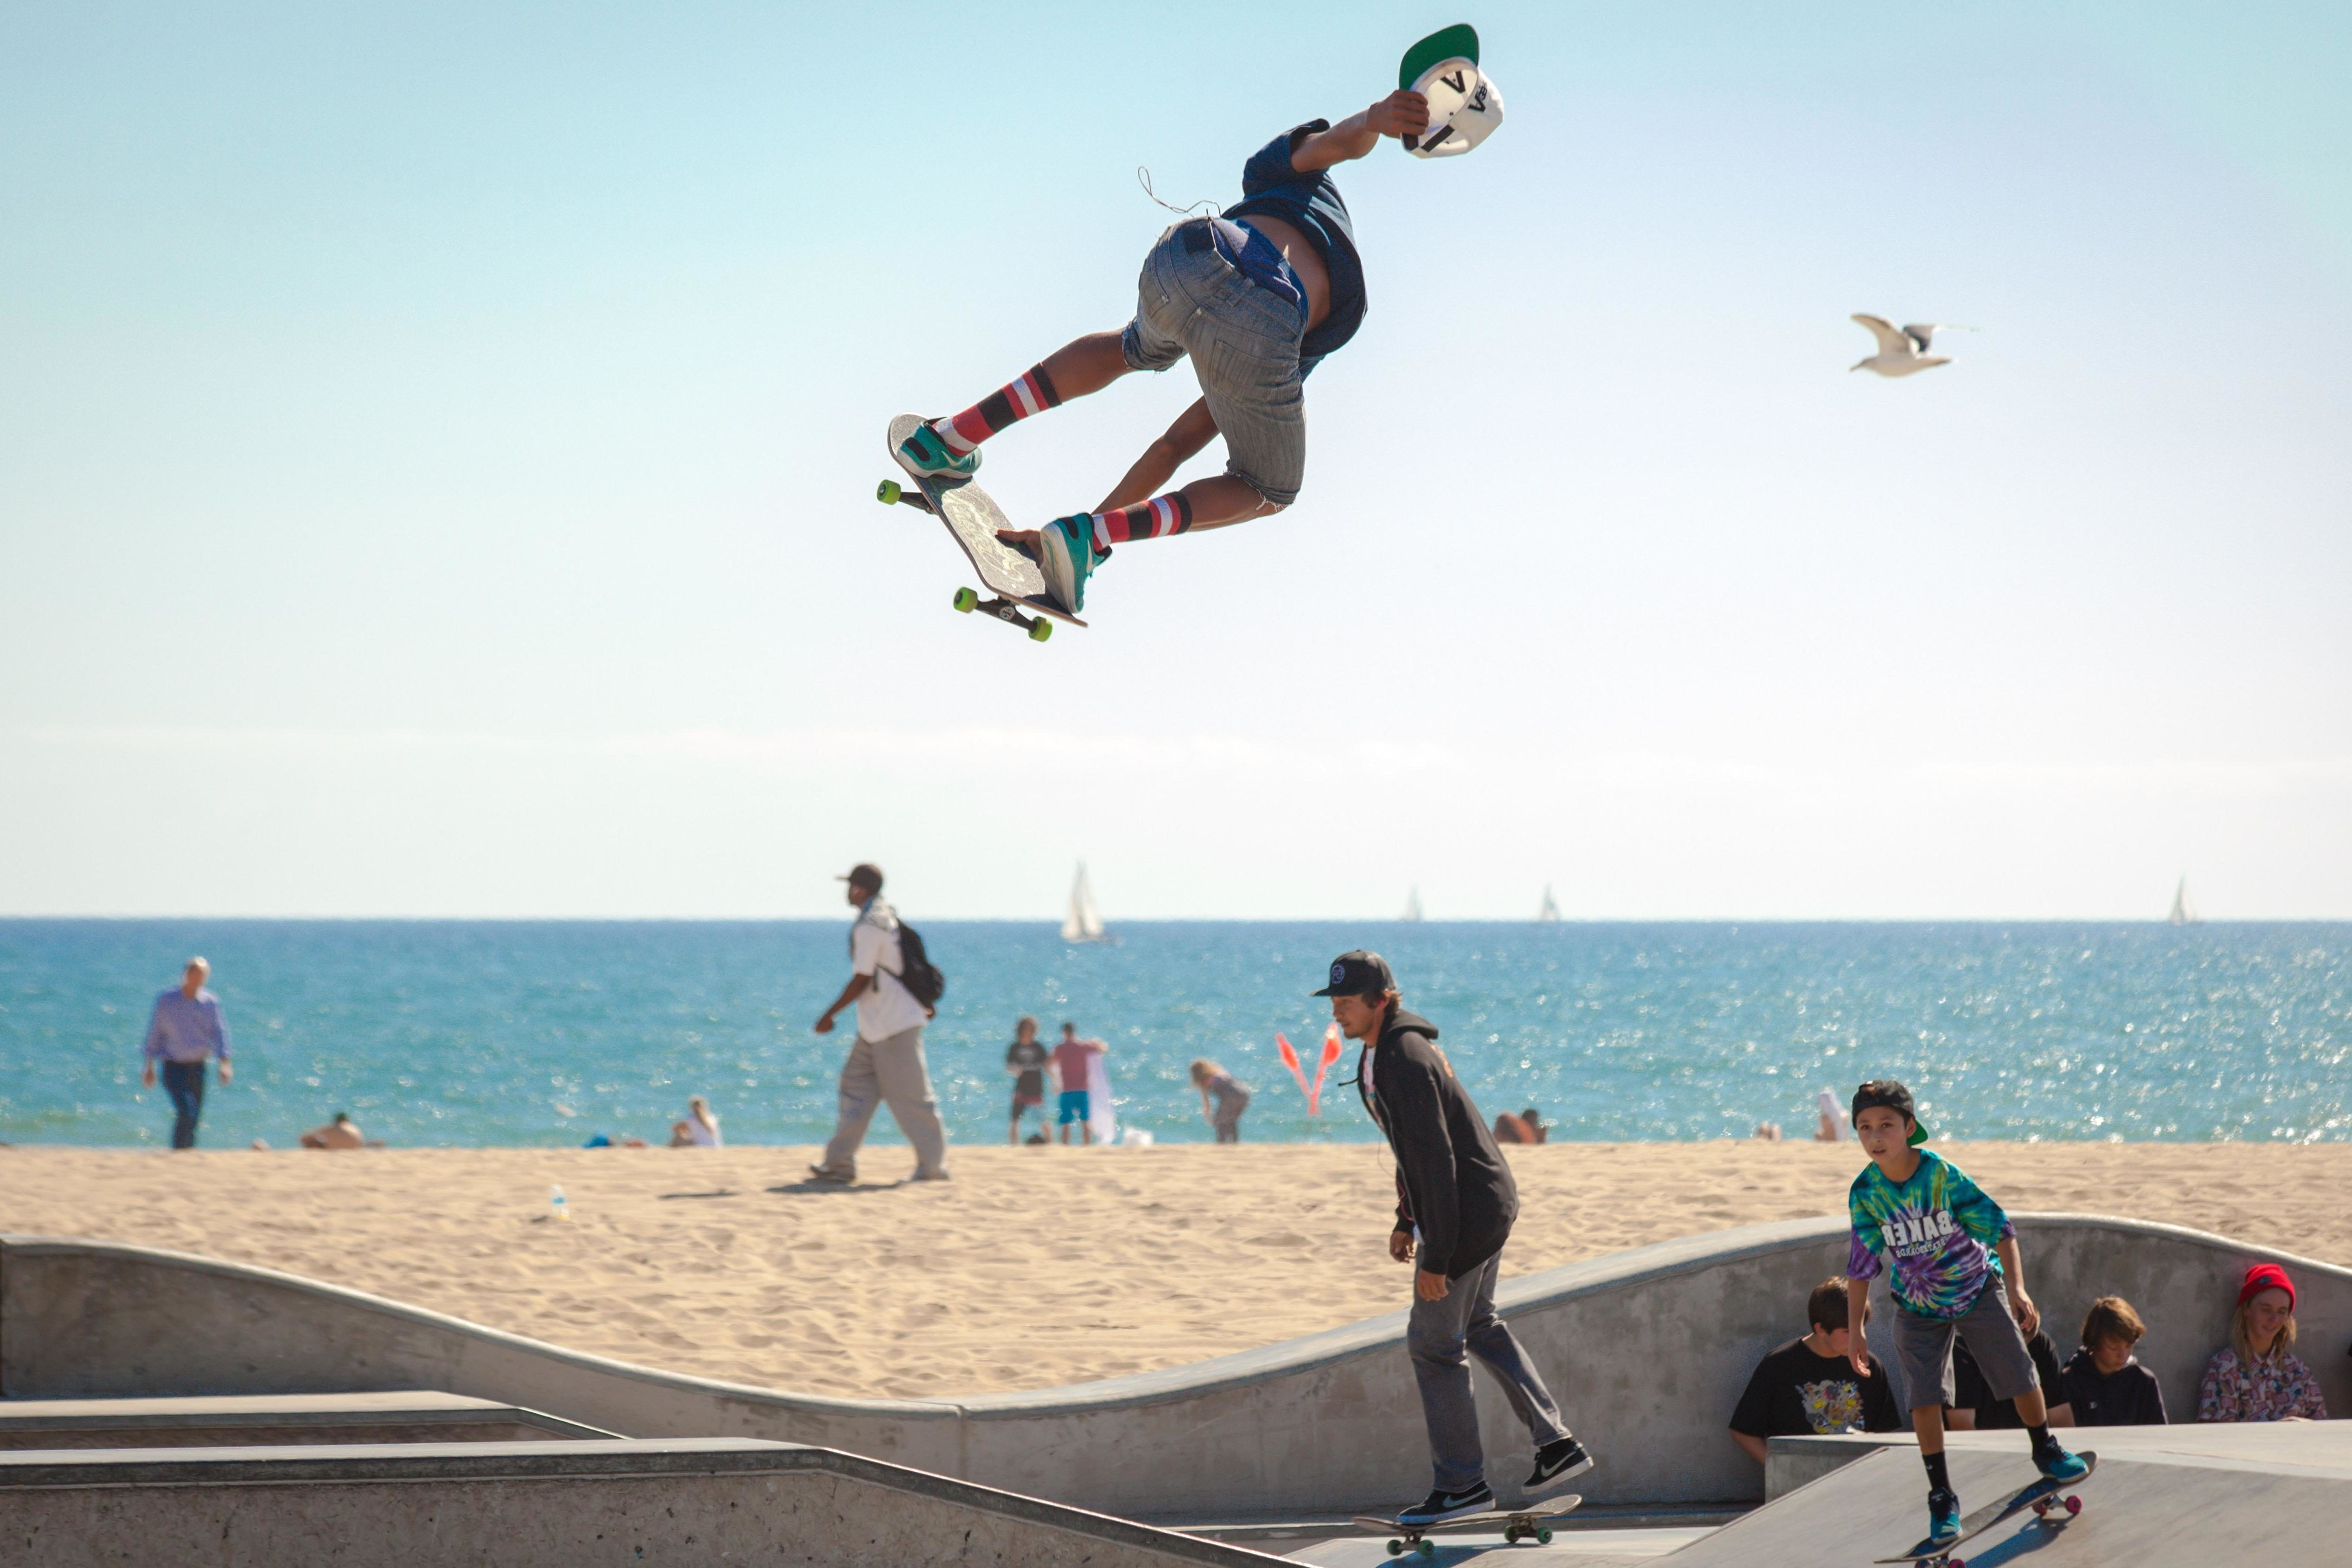 free picture jump extreme sport skateboard lifestyle sea beach